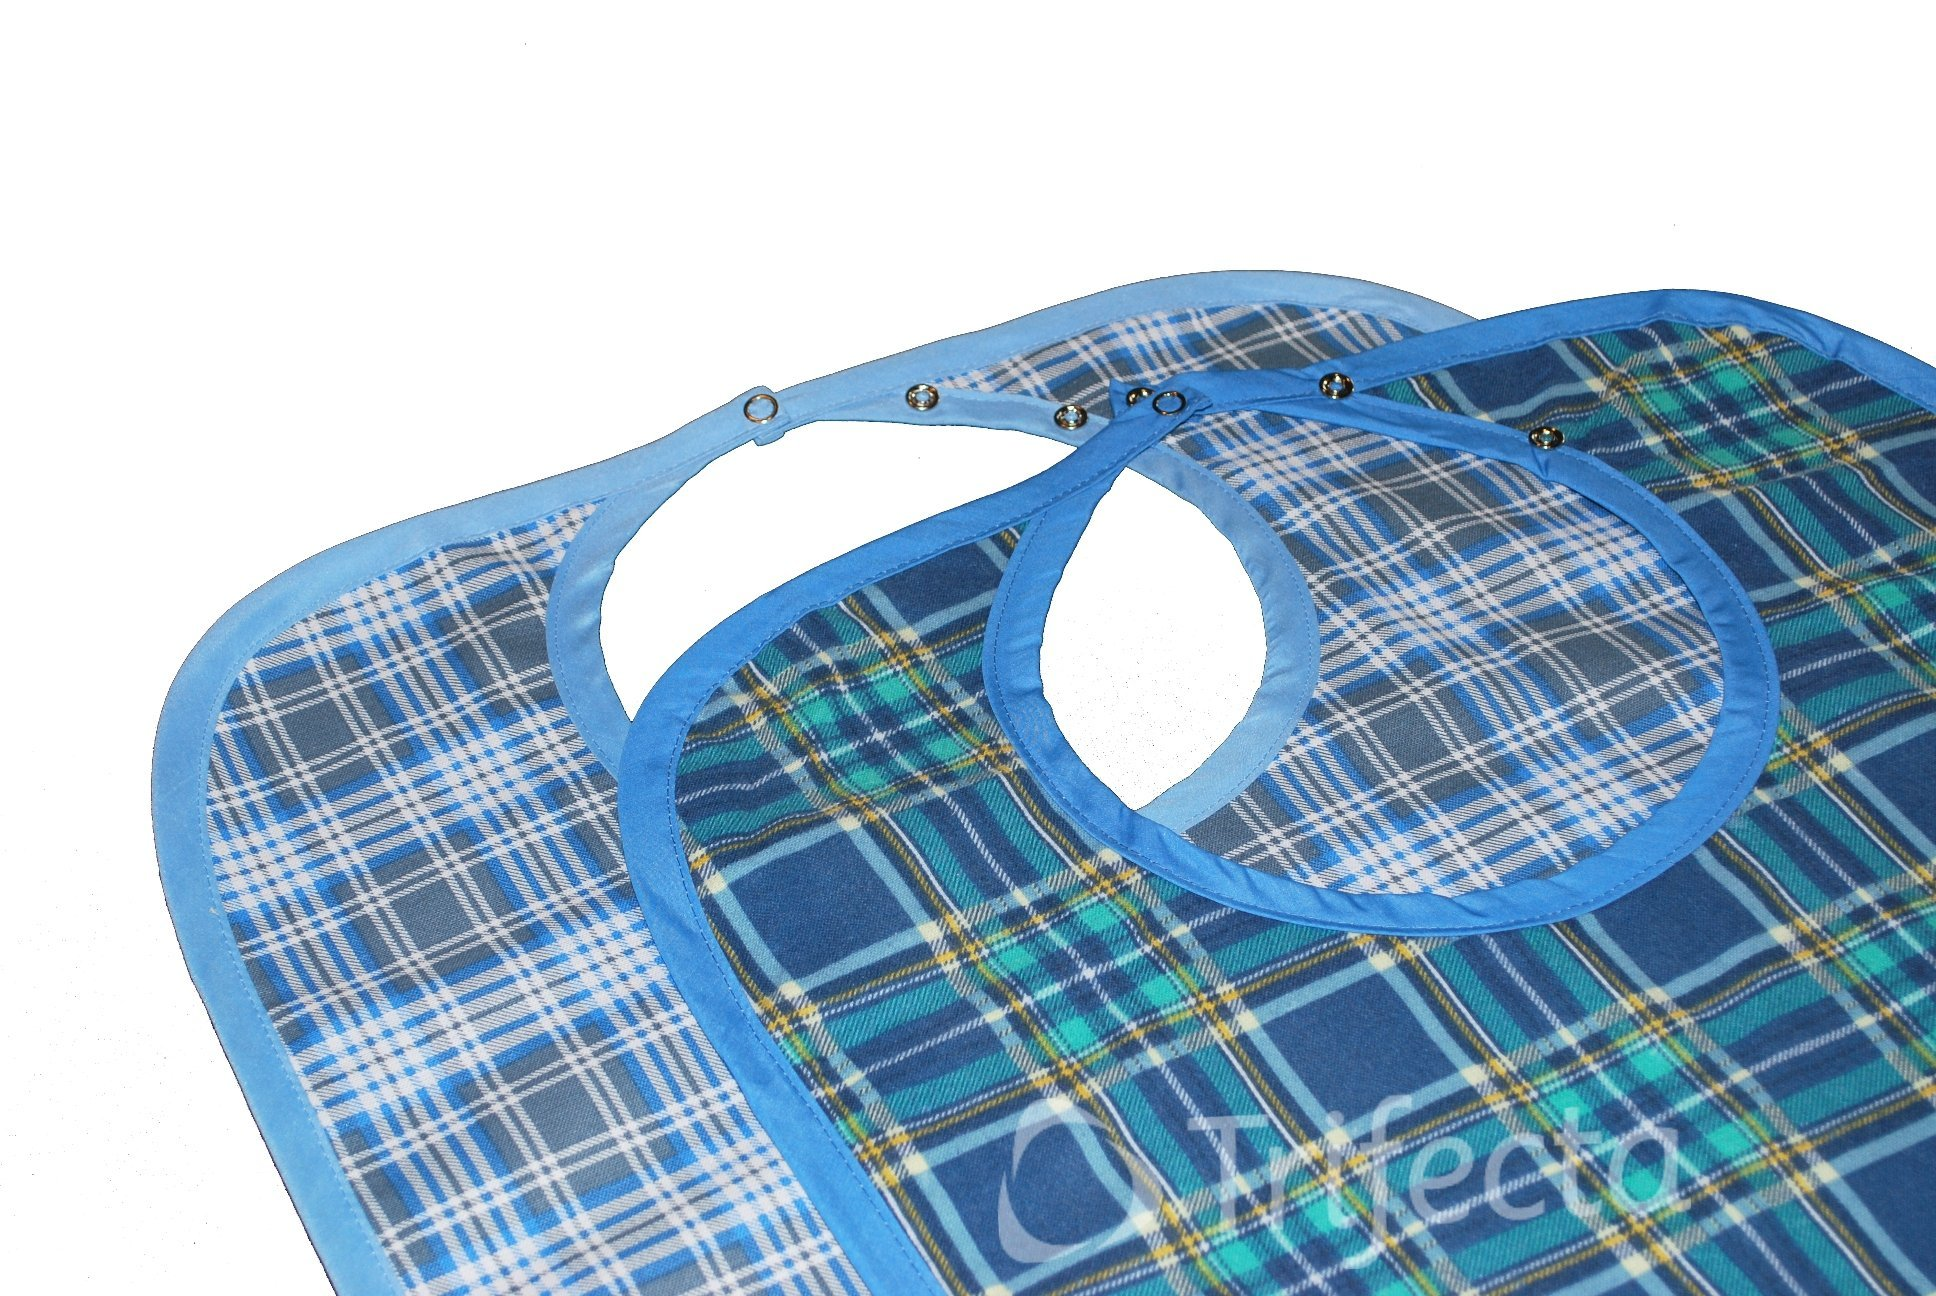 Large Extra Long, Washable Clothing Spill, Mealtime Protector, Waterproof Ladies & Men Adult Sized Bib (Pk/2)